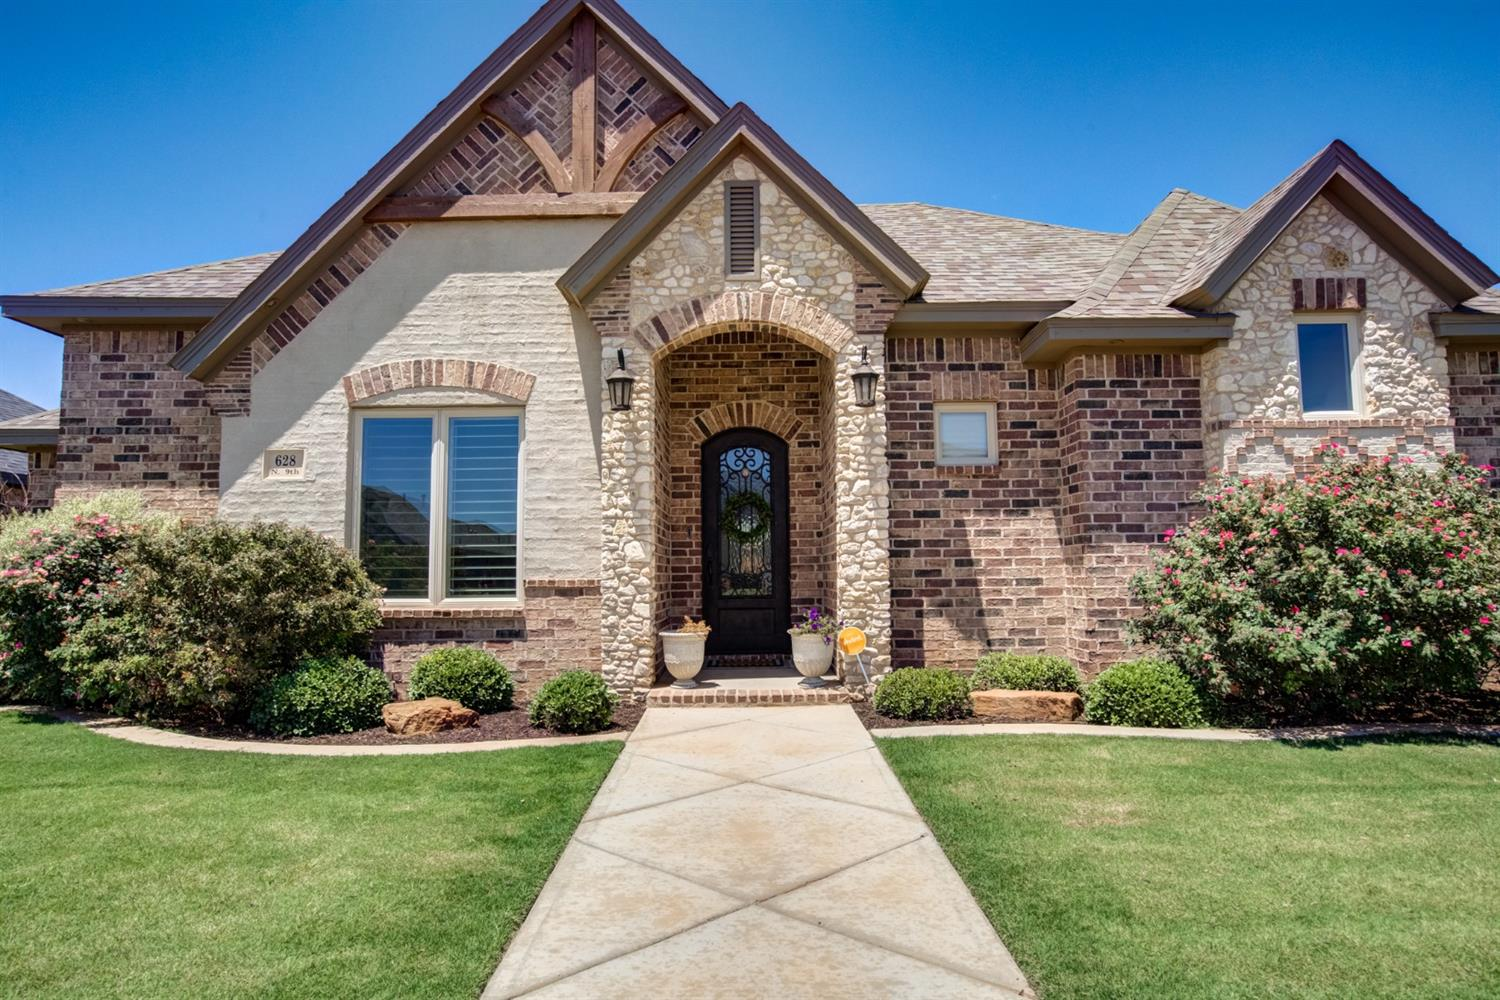 Welcome home to this spacious and beautiful home in Preston Manor and Frenship ISD.  This expertly designed home was a former Parade Home built by Dan Wilson Homes.Attention to detail is prominent throughout. 4 beds, 3 baths, and an oversized garage that has room for your golf cart or ATV. Tall, sunny windows  create a relaxing atmosphere as soon as you enter.  A windmill ceiling fan is the icing on the cake in this living area that has a remote gas fireplace.  A NEST controlled thermostat makes remote access to control the indoor temps effortless. Professionally landscaped with automatic sprinklers in front and back make maintenance a breeze!  Neighborhood Amenities feature pool, clubhouse, fitness center, tennis courts and a dog park.  Preston Manor is home to one of the best communities in Frenship ISD. Are you ready to make this Happy place your Home?